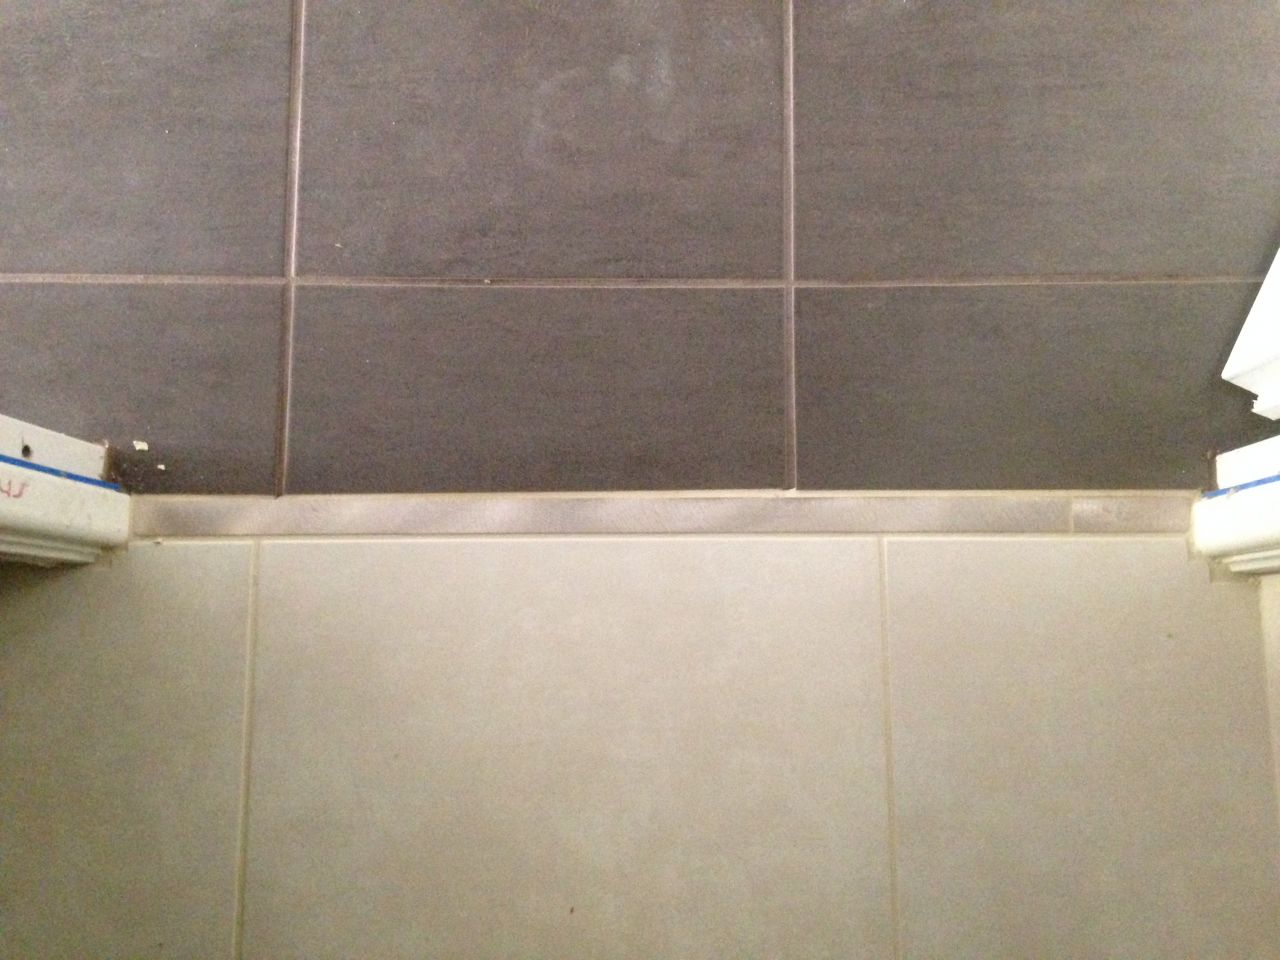 Carrelage fini hericy seine et marne for Carrelage wc gris